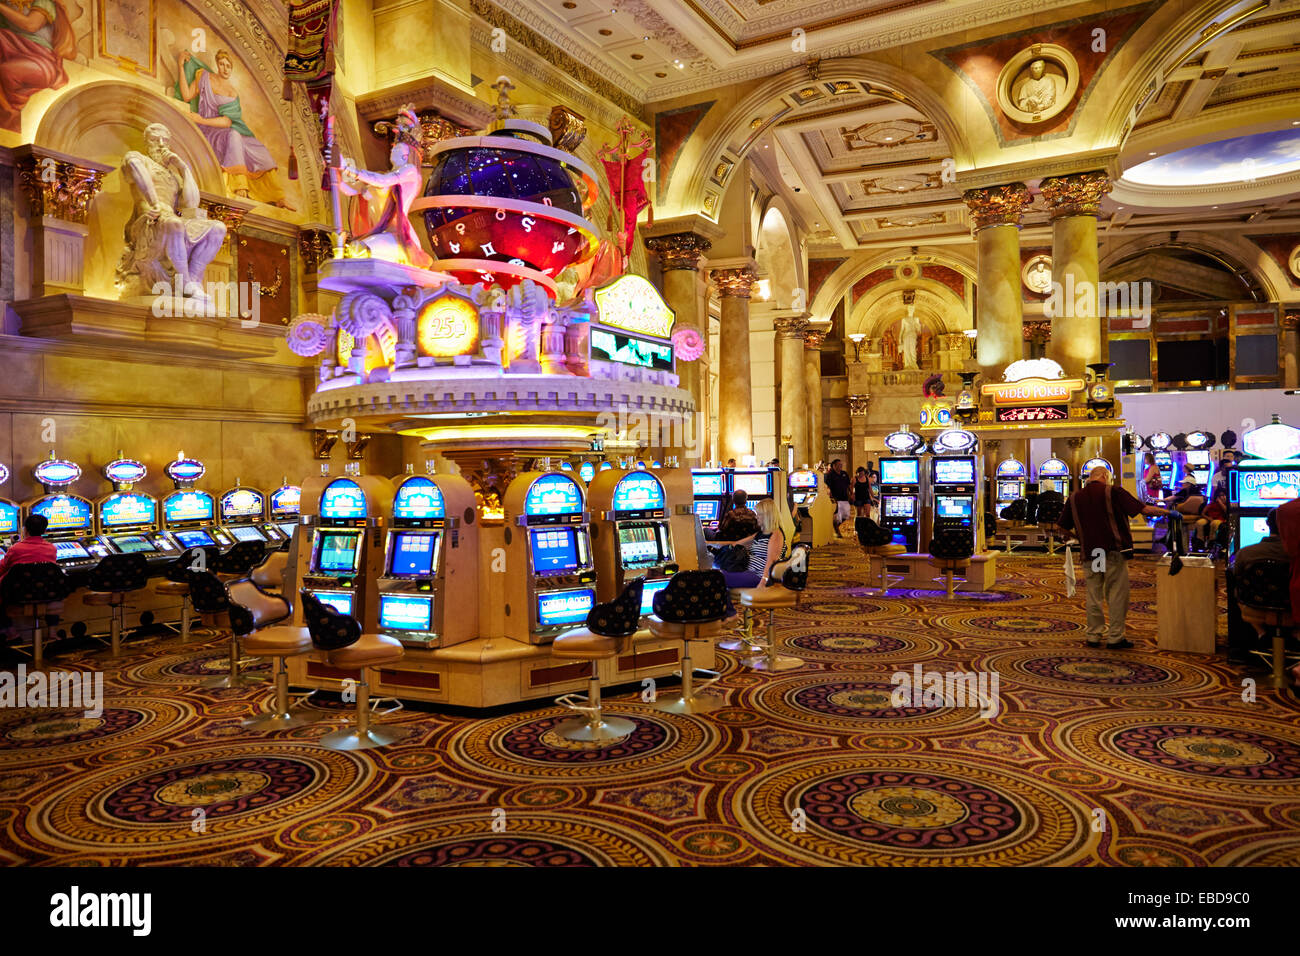 caesars palace online casino like a diamond